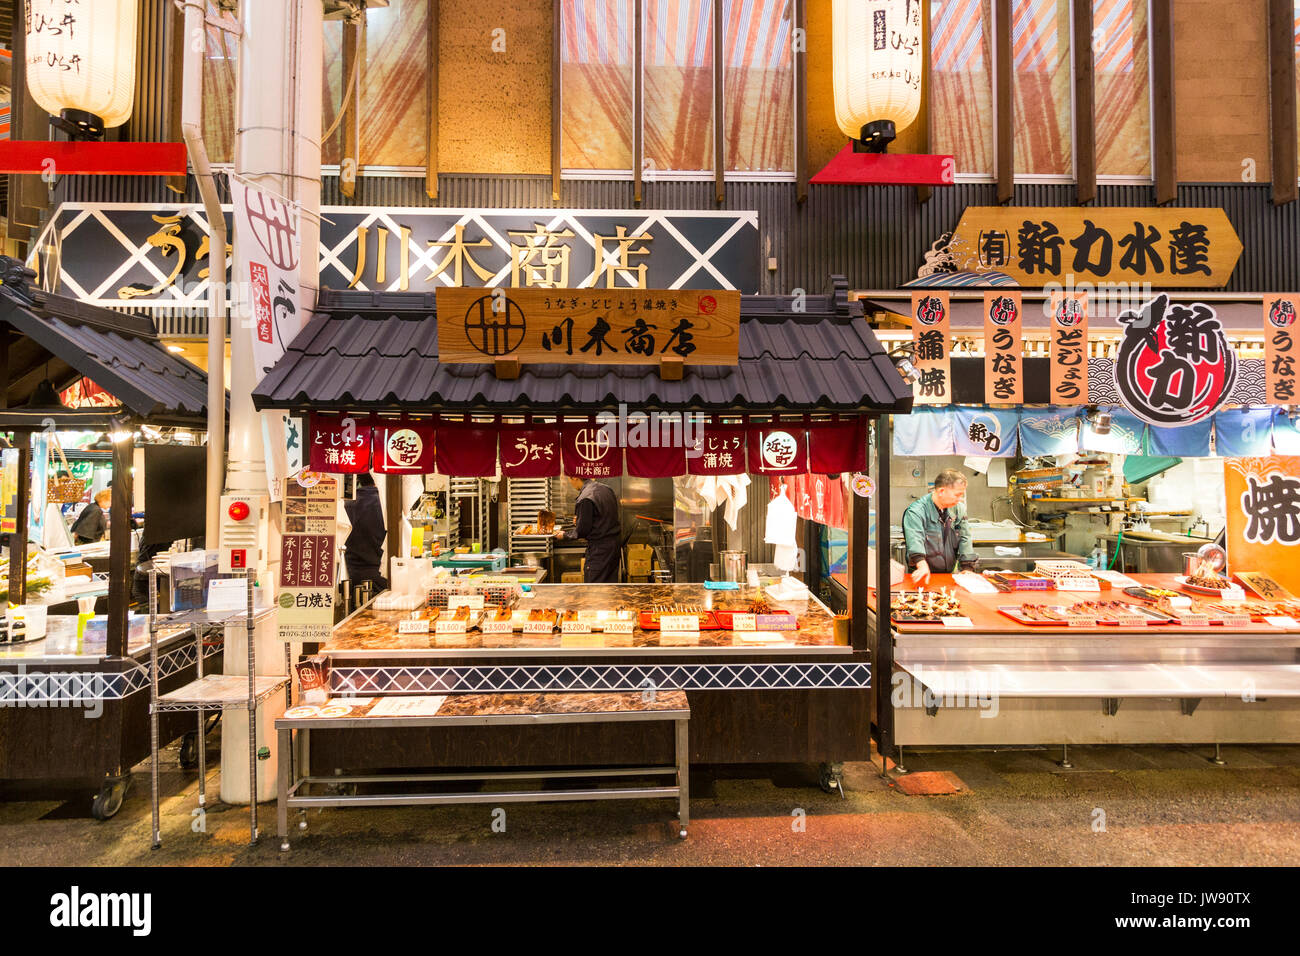 Two take-away seafood shops with open counters side by side in the indoor fresh food market, Omicho, at kanazawa, Japan. - Stock Image